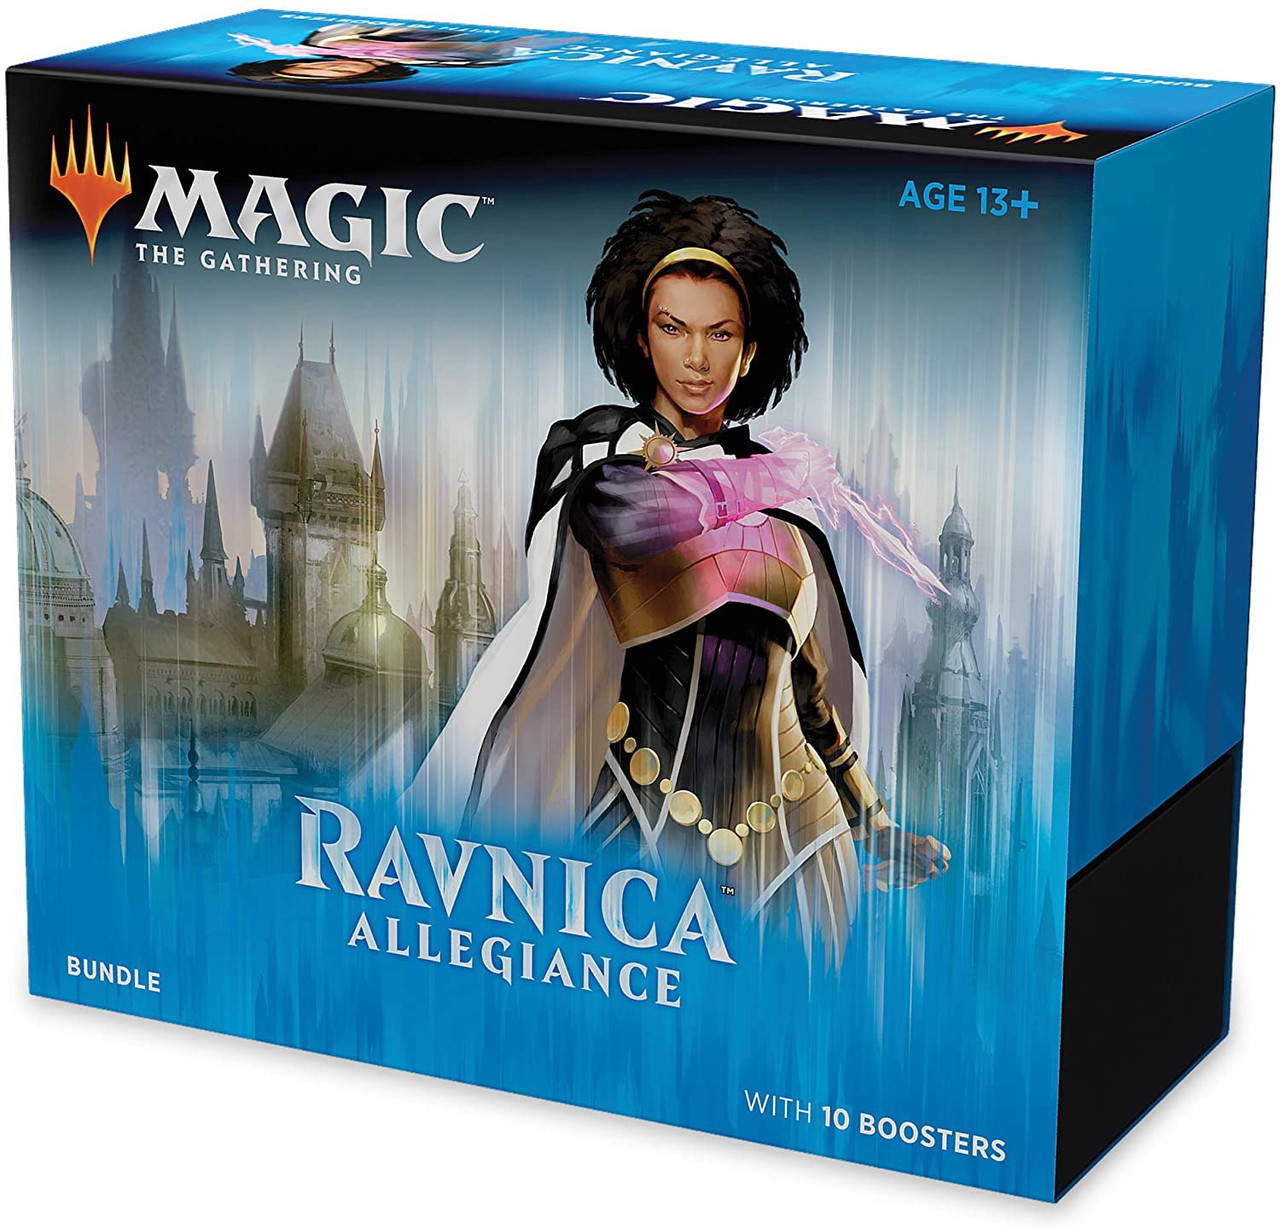 Magic The Gathering Ravnica Allegiance Bundle Wizards of the Coast